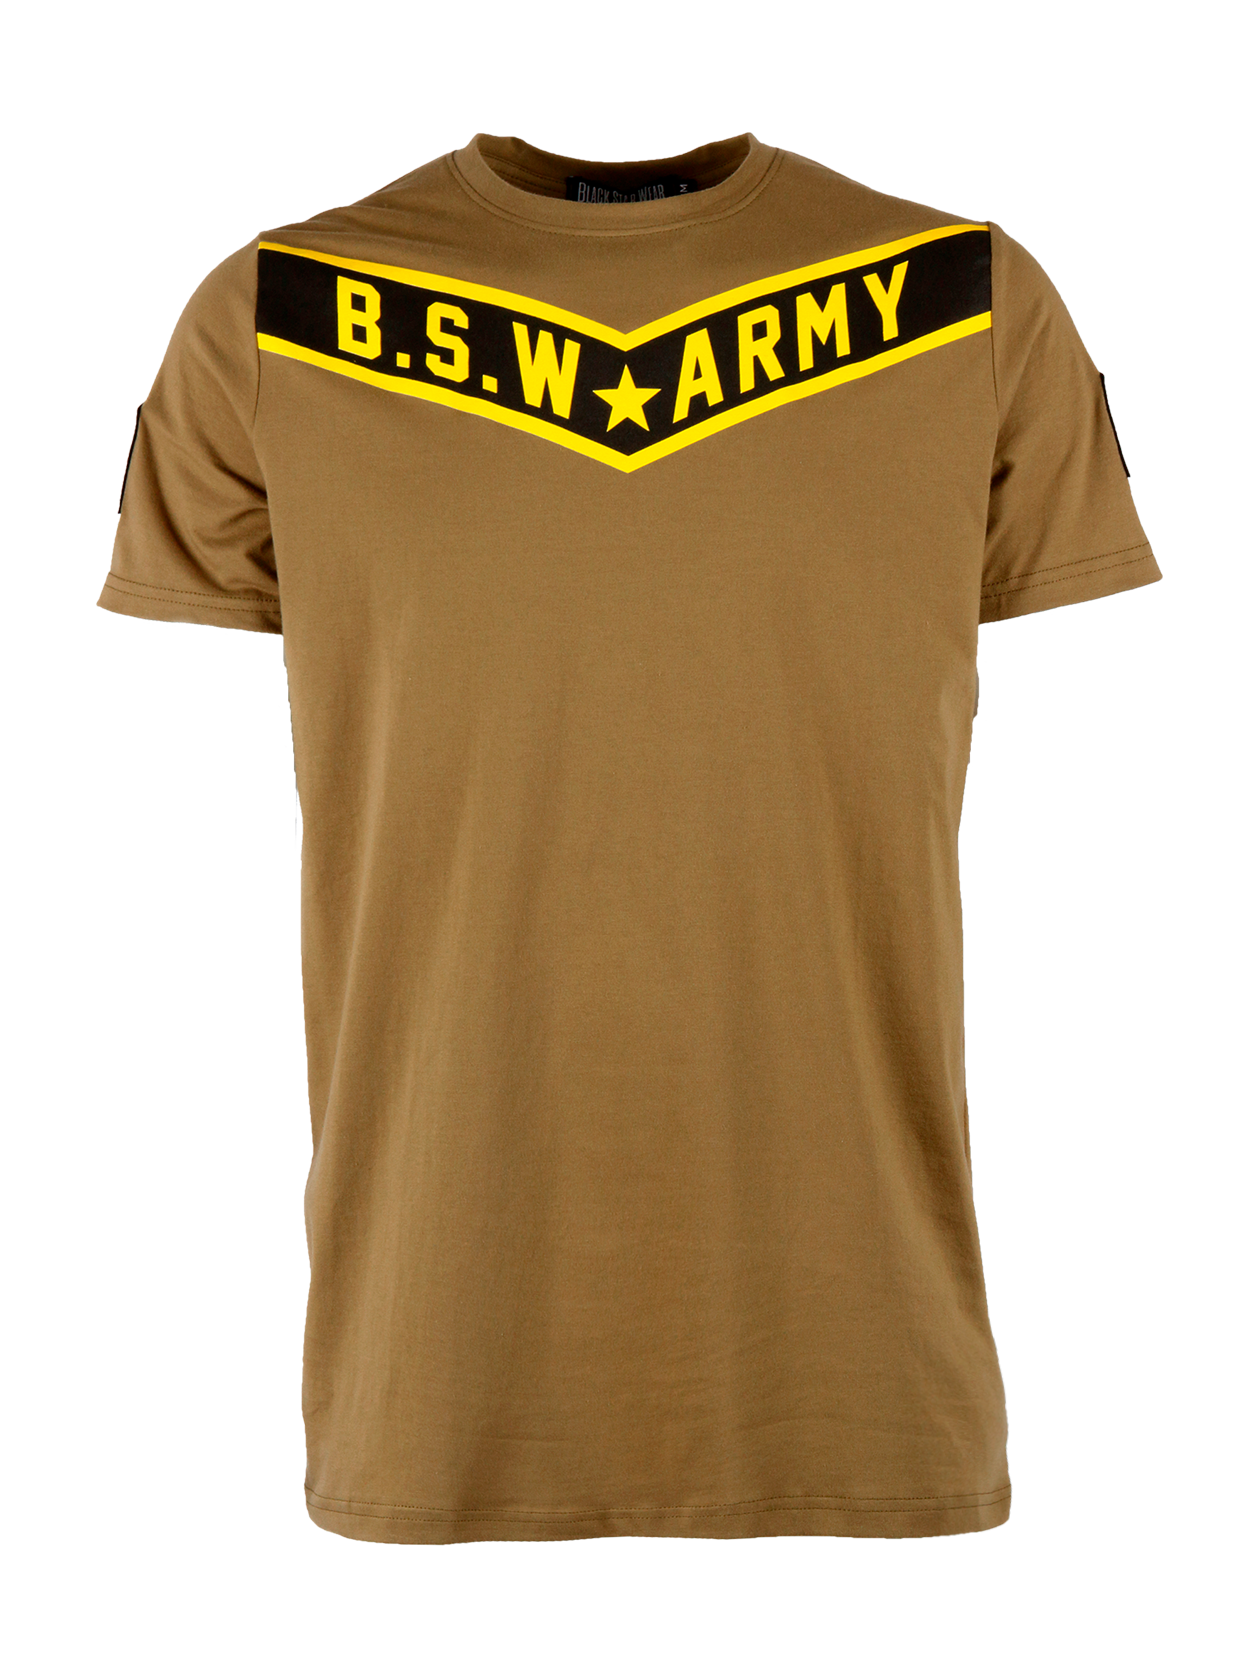 Mens t-shirt B.S.W. ArmyMens military style t-shirt by Black Star Wear. Longline cut, straight fit, natural cotton (95%) and lycra (5%) blend, o-neck. Shevron patches on the sleeves, B.S.W. Army print in black and yellow on the chest. Avaliable in khaki.<br><br>size: XS<br>color: Khaki<br>gender: male